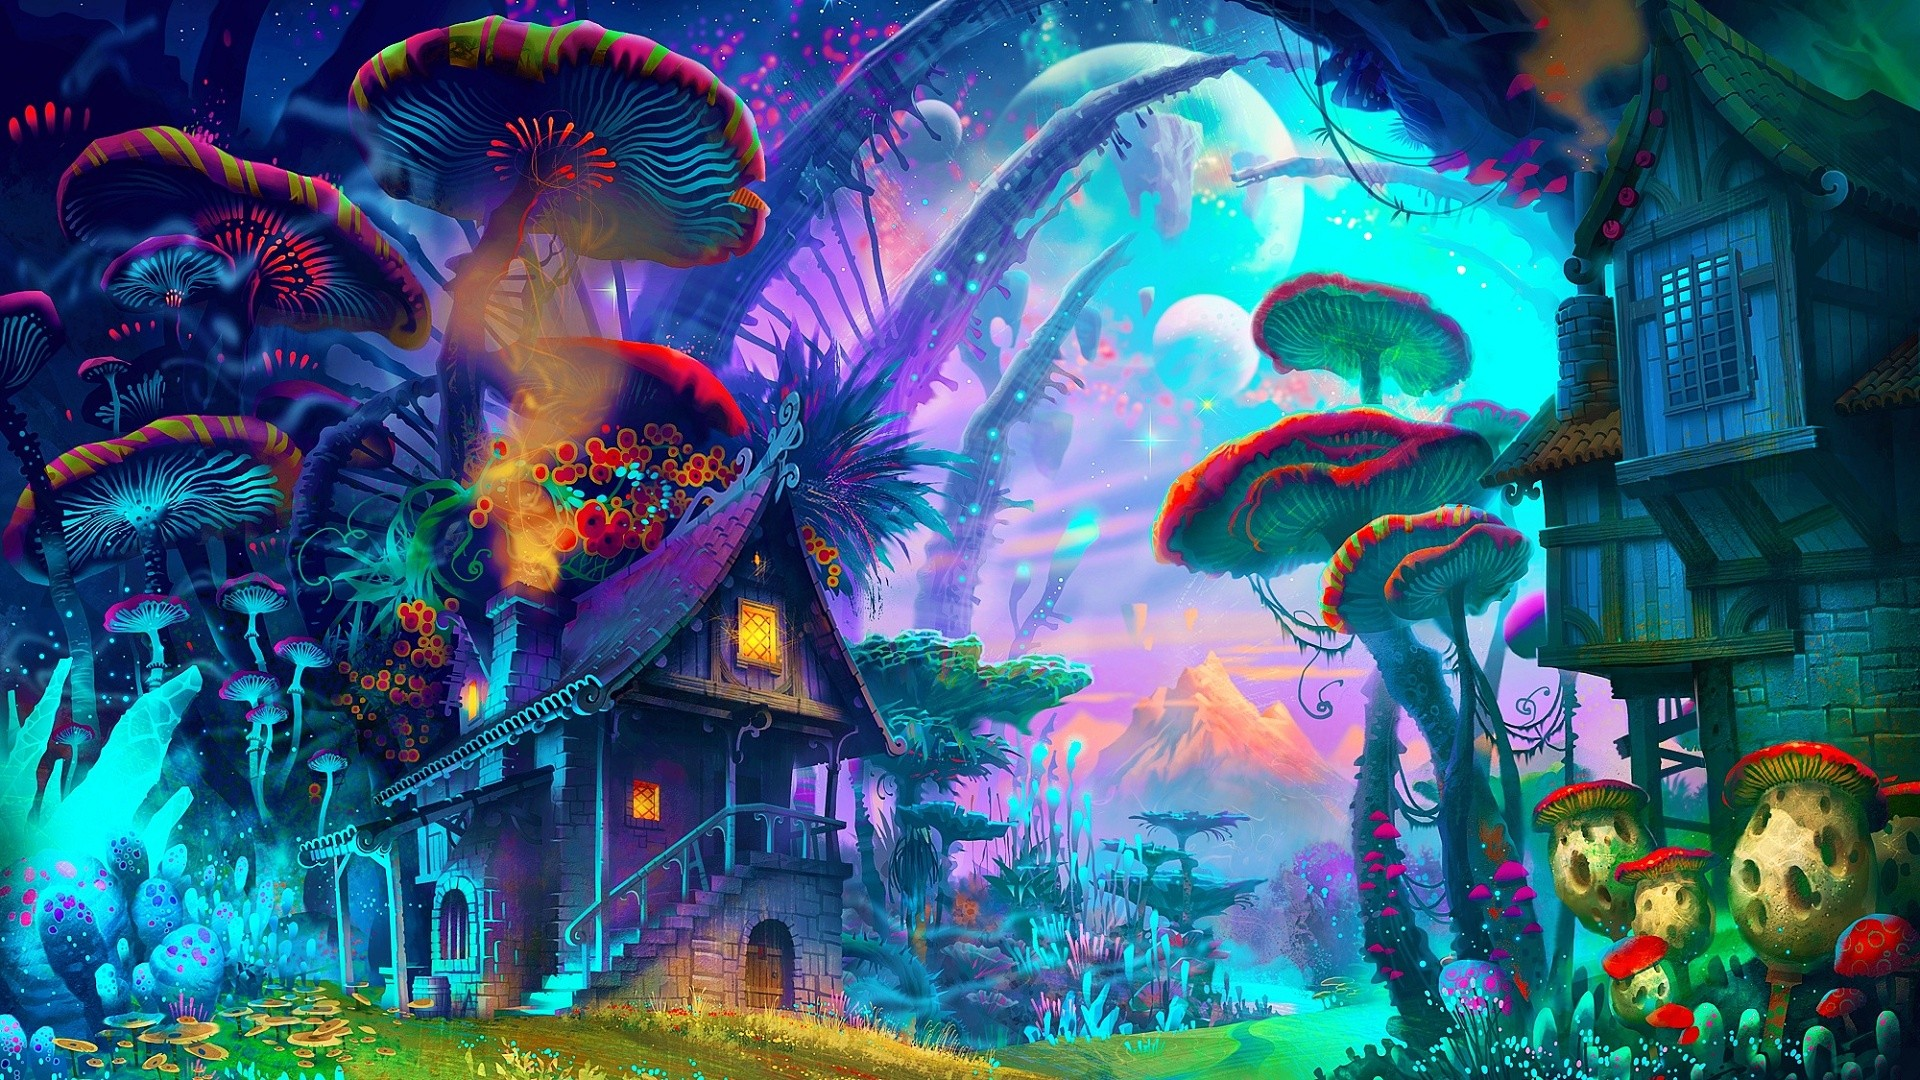 Drawn triipy nature House colorful art 1920x1080 drawing